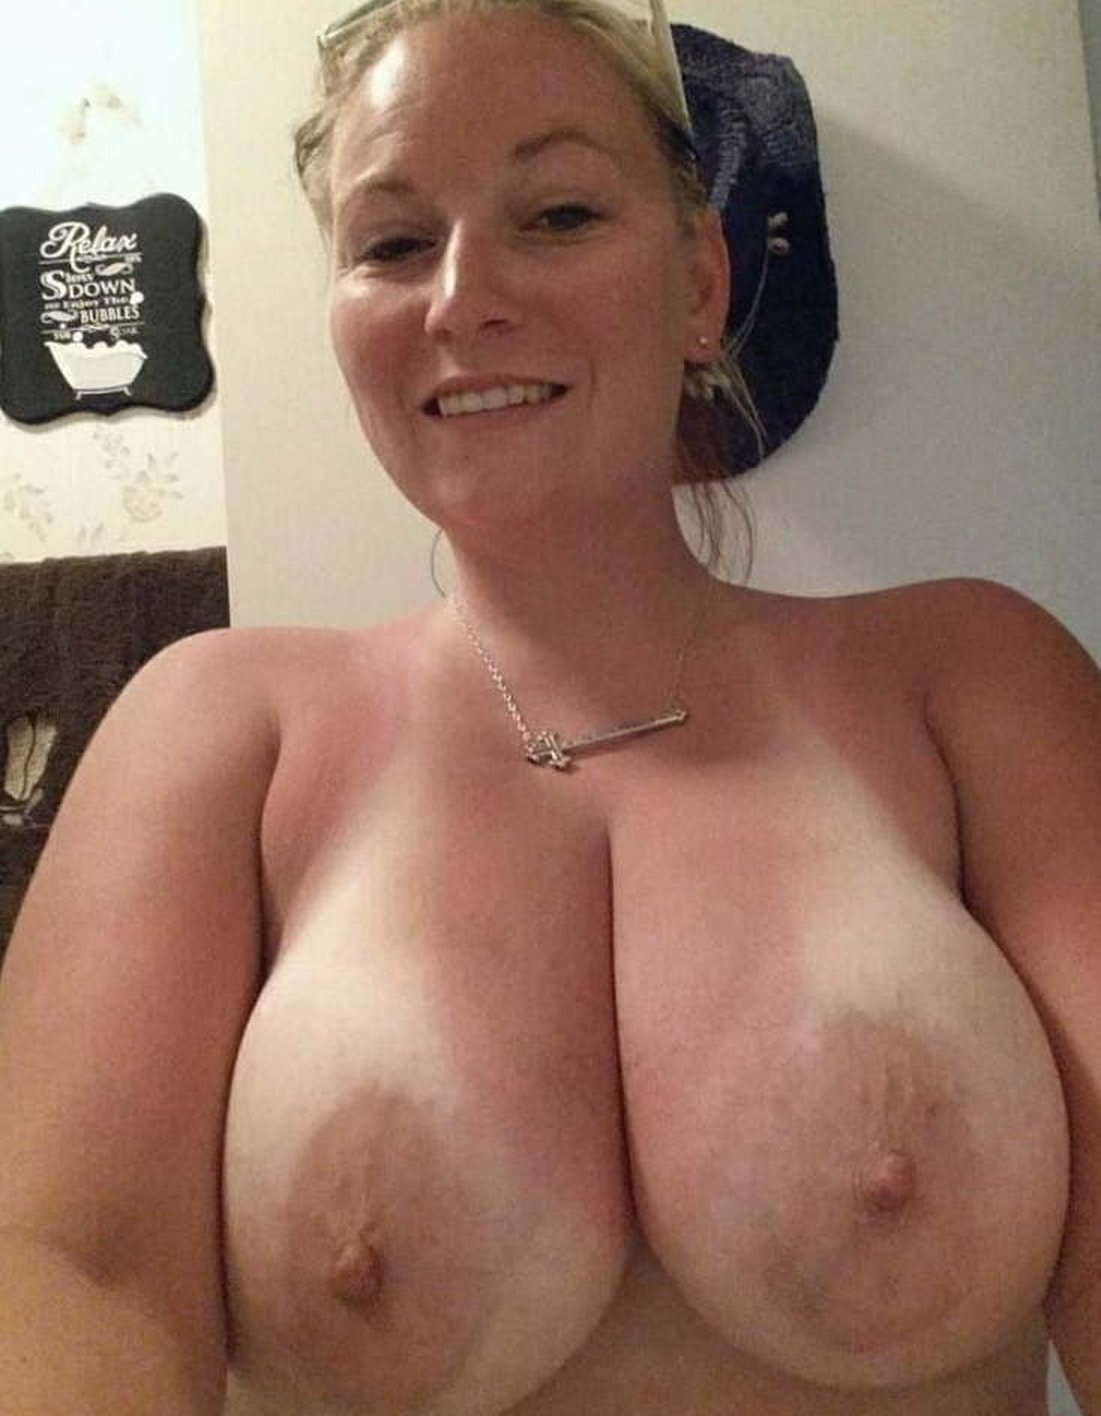 Busty MILF bares her big boobs during selfie action. Cute mature babe with delicious boobs presents her hot homemade selfshot photo